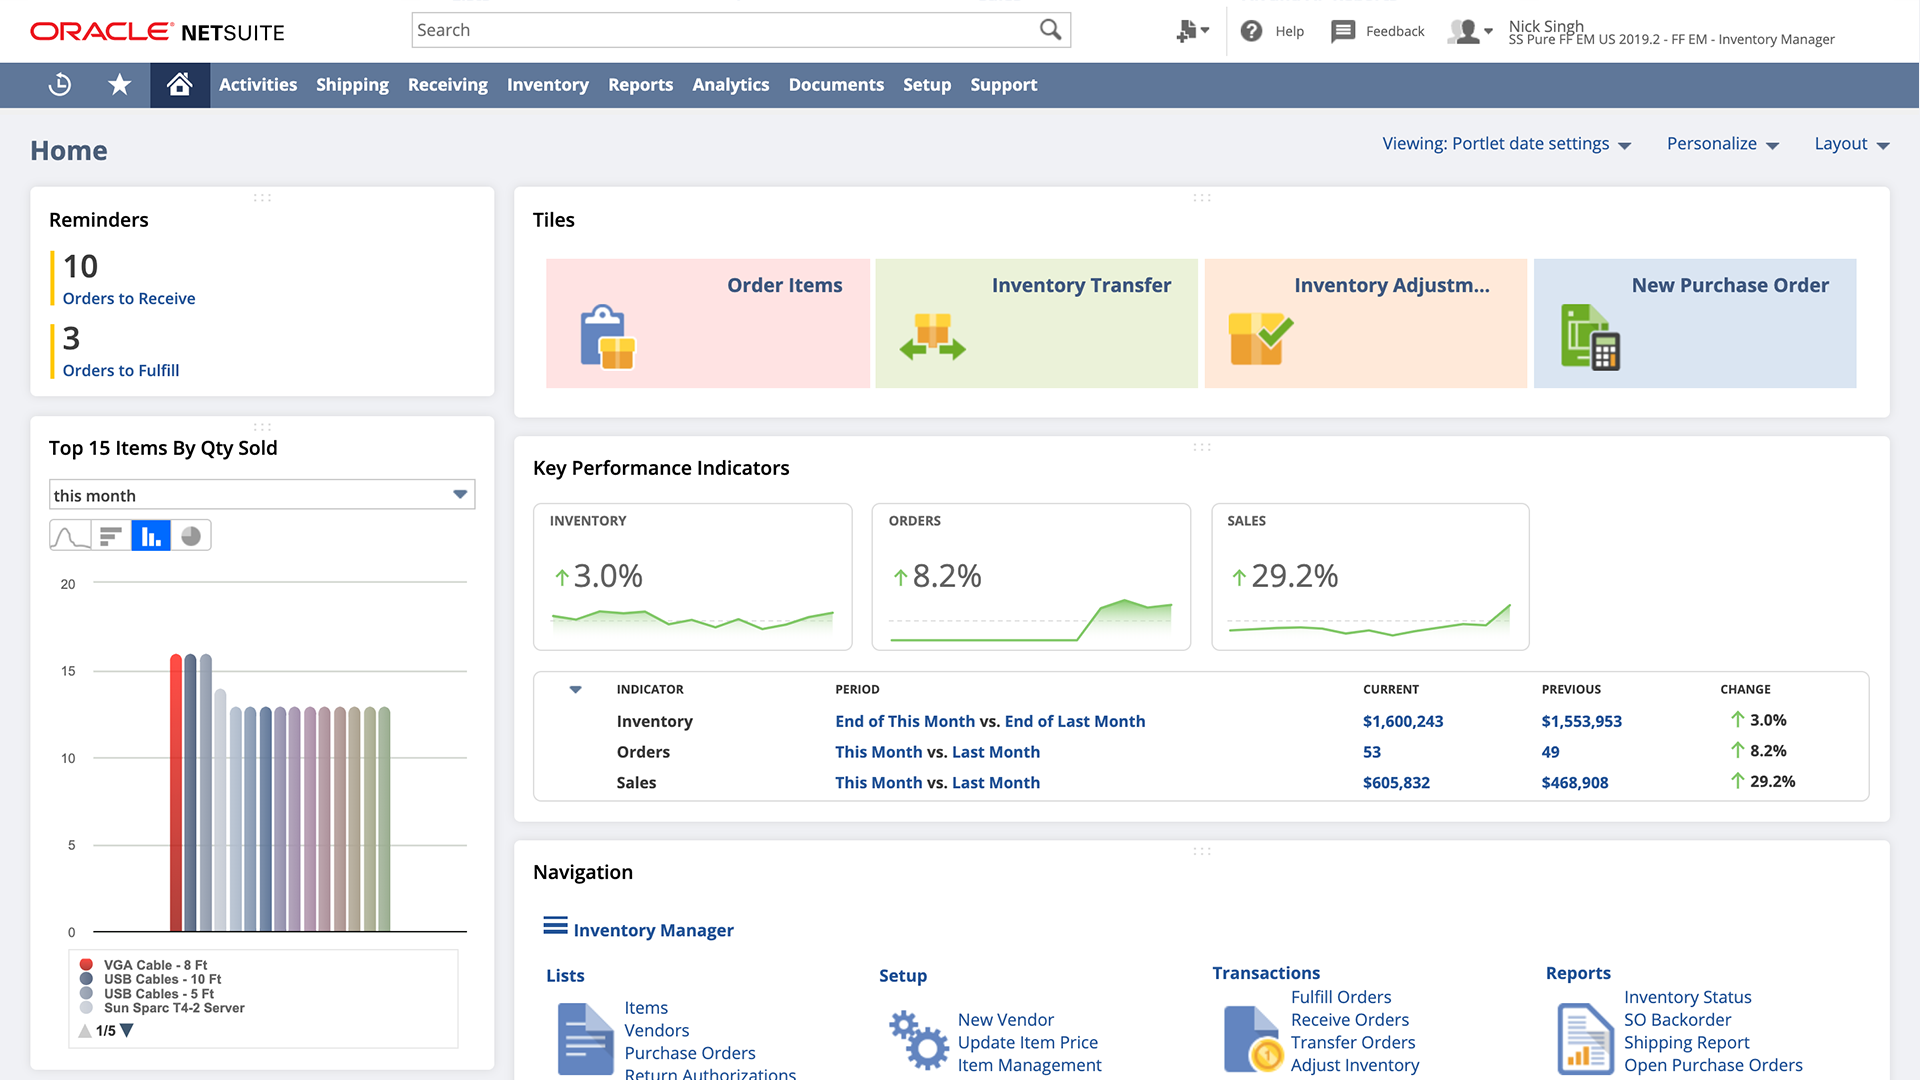 Role-based KPIs and Dashboards: Inventory Manager